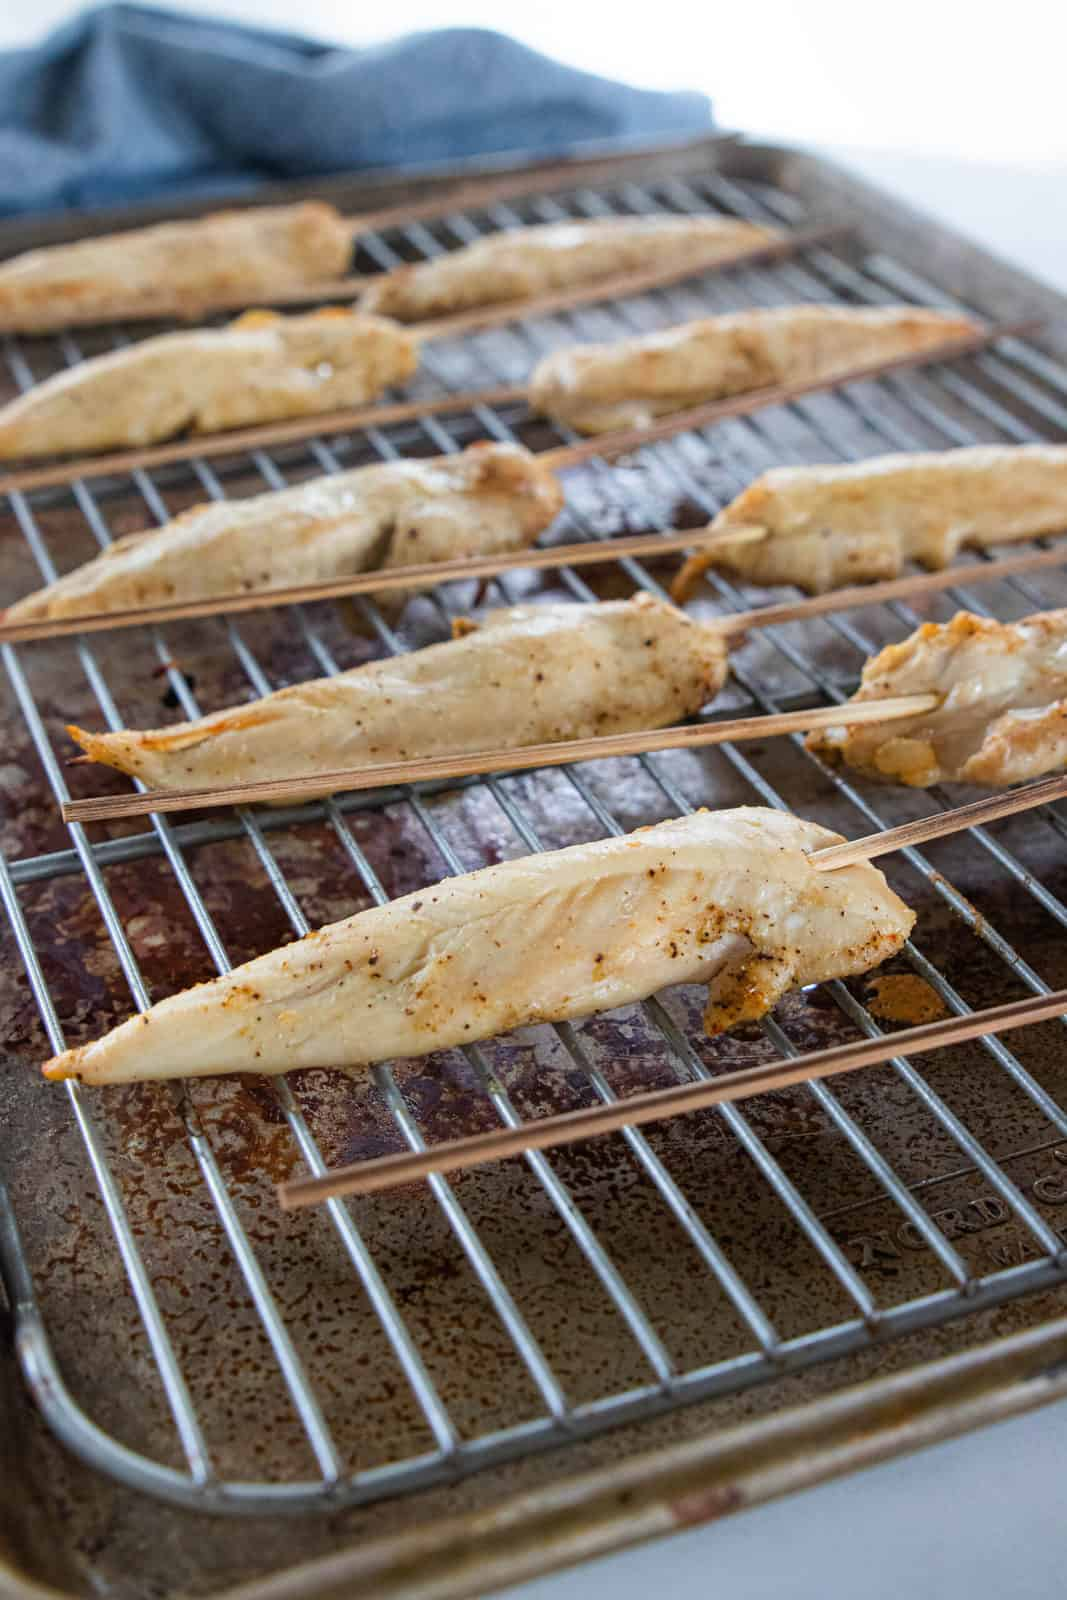 Chicken sticks being shown on a baking sheet.